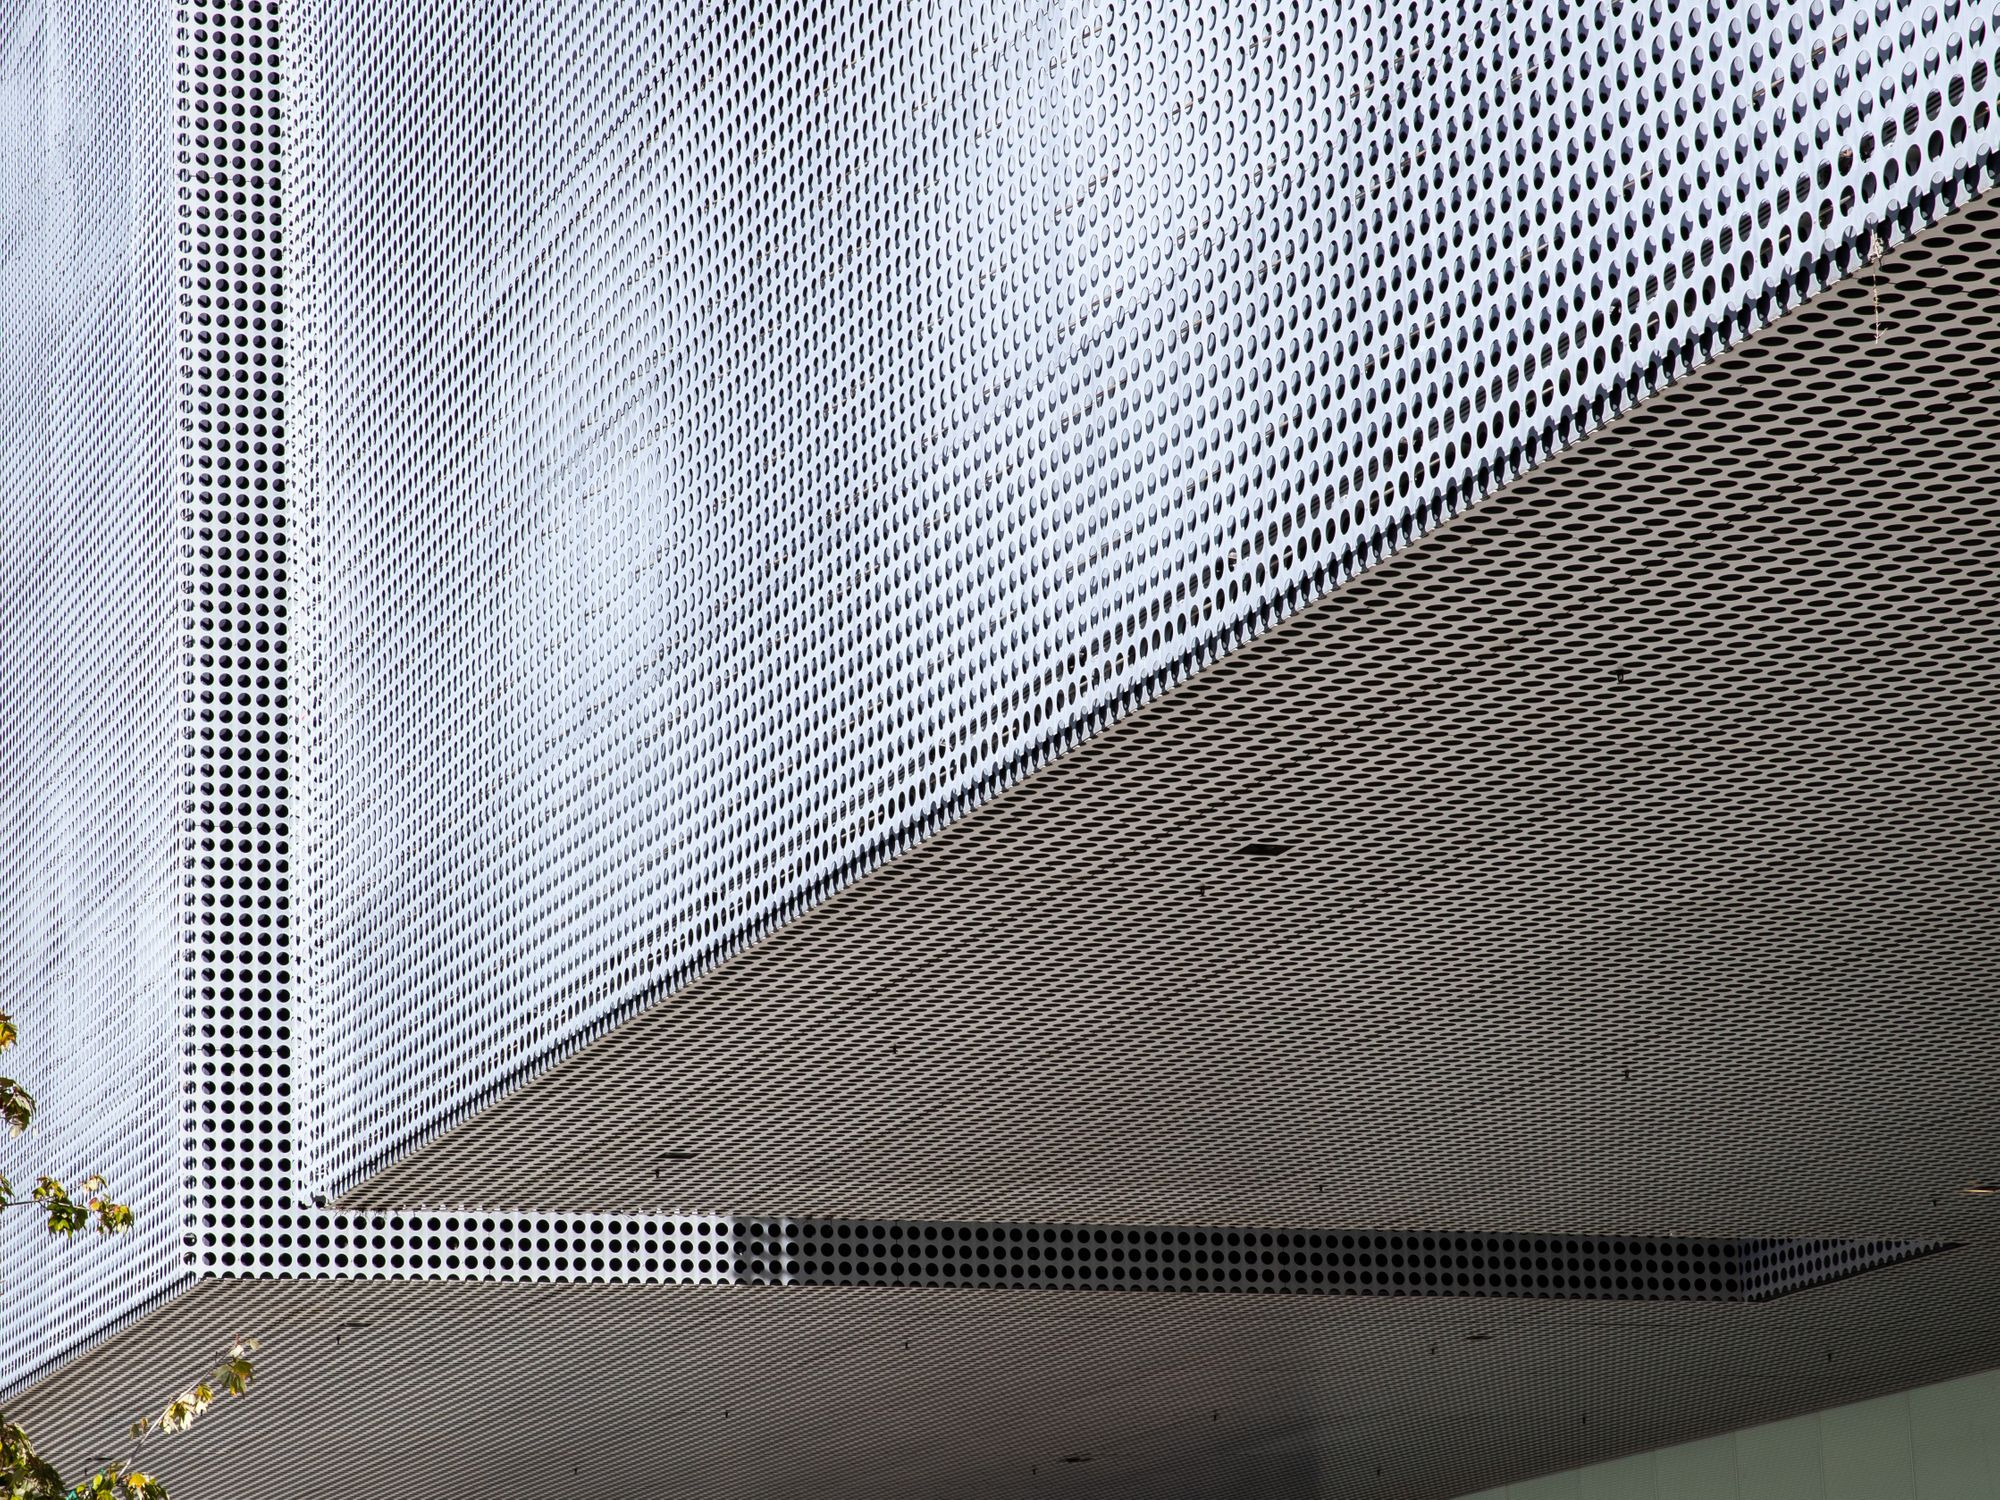 Moiré effect created by layering two offset Perforated panels | Tampa Museum of Art